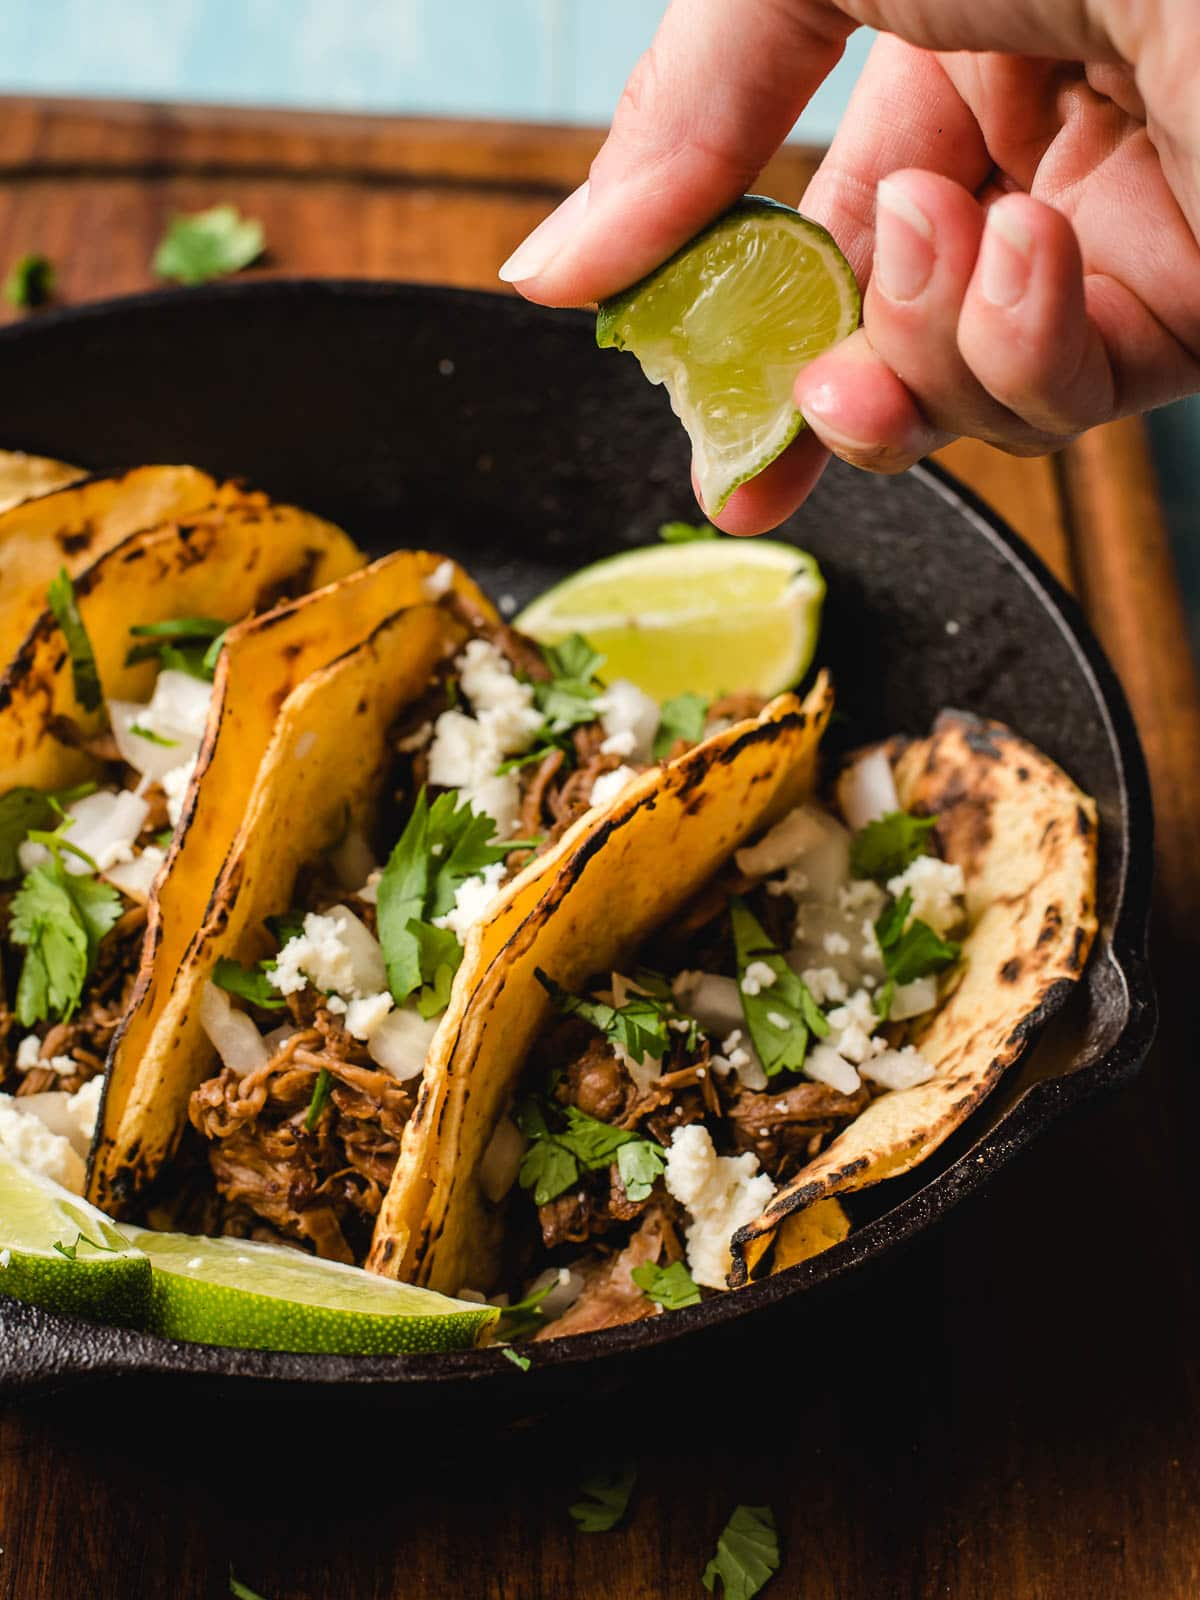 Hand squeeing lime onto barbacoa tacos.